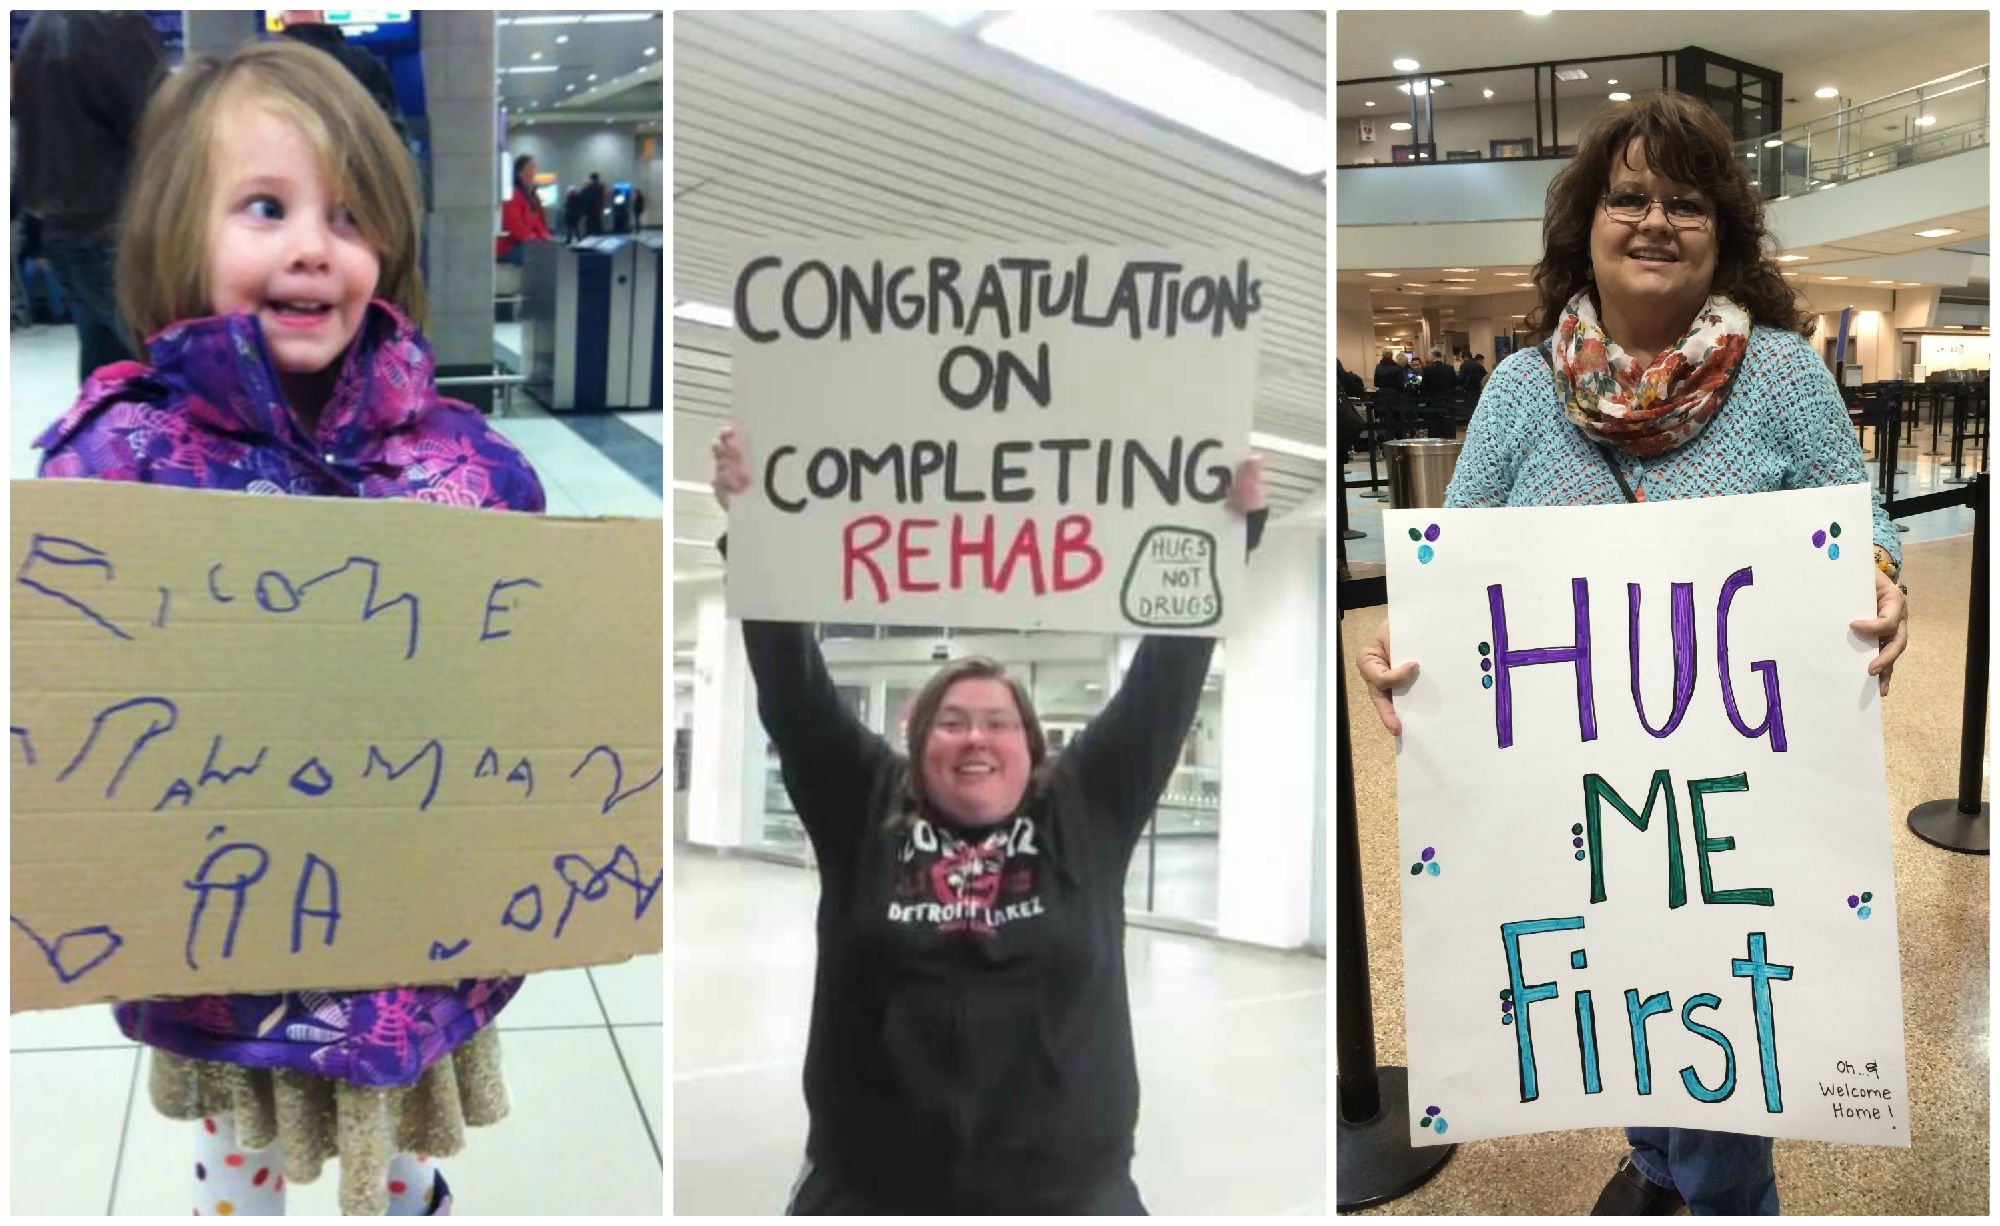 Arriving At The Airport After Being Away From Home Can Be Very Emotional Here Are The Best Funny Welcome Home Signs Welcome Home Signs Airport Welcome Signs